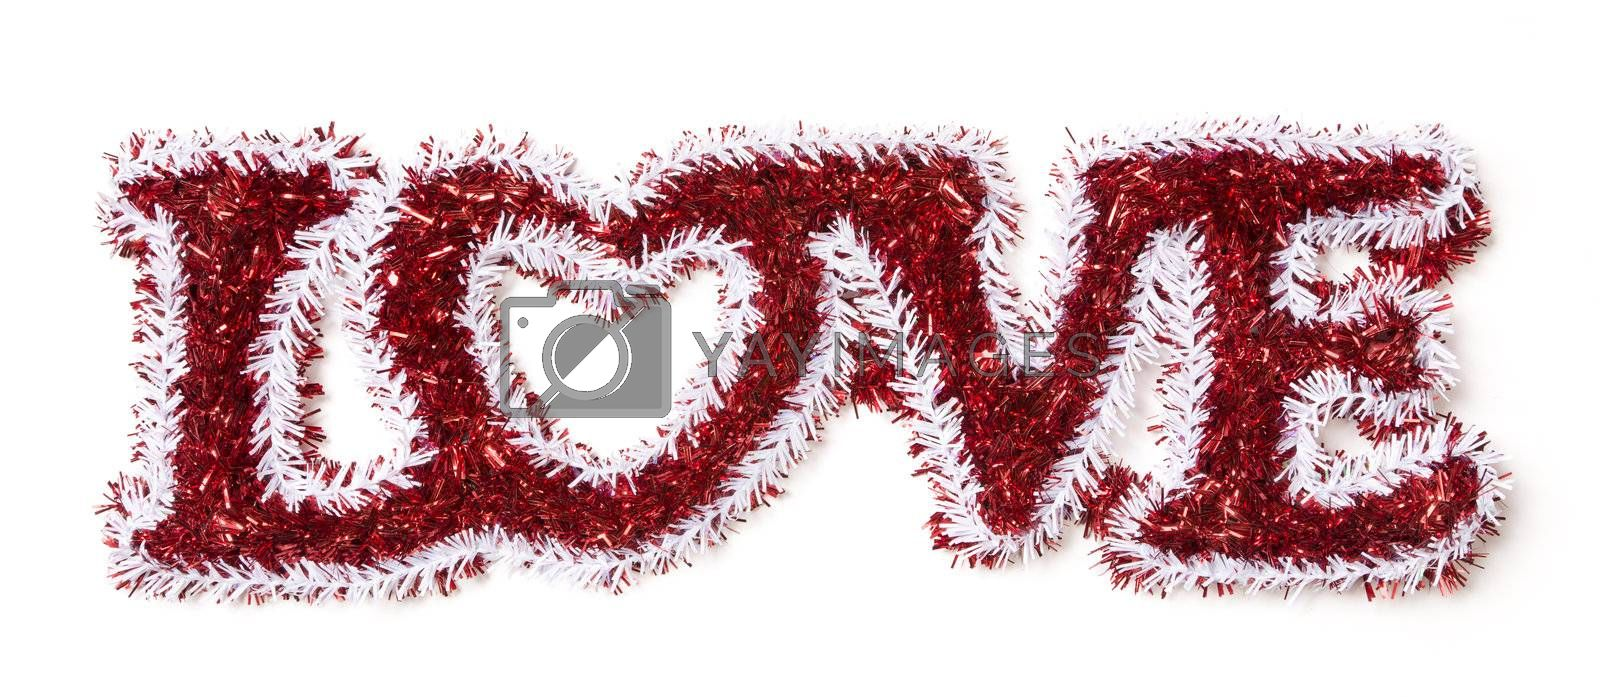 The Word Love Shaped White and Red Tinsel on a White Background.